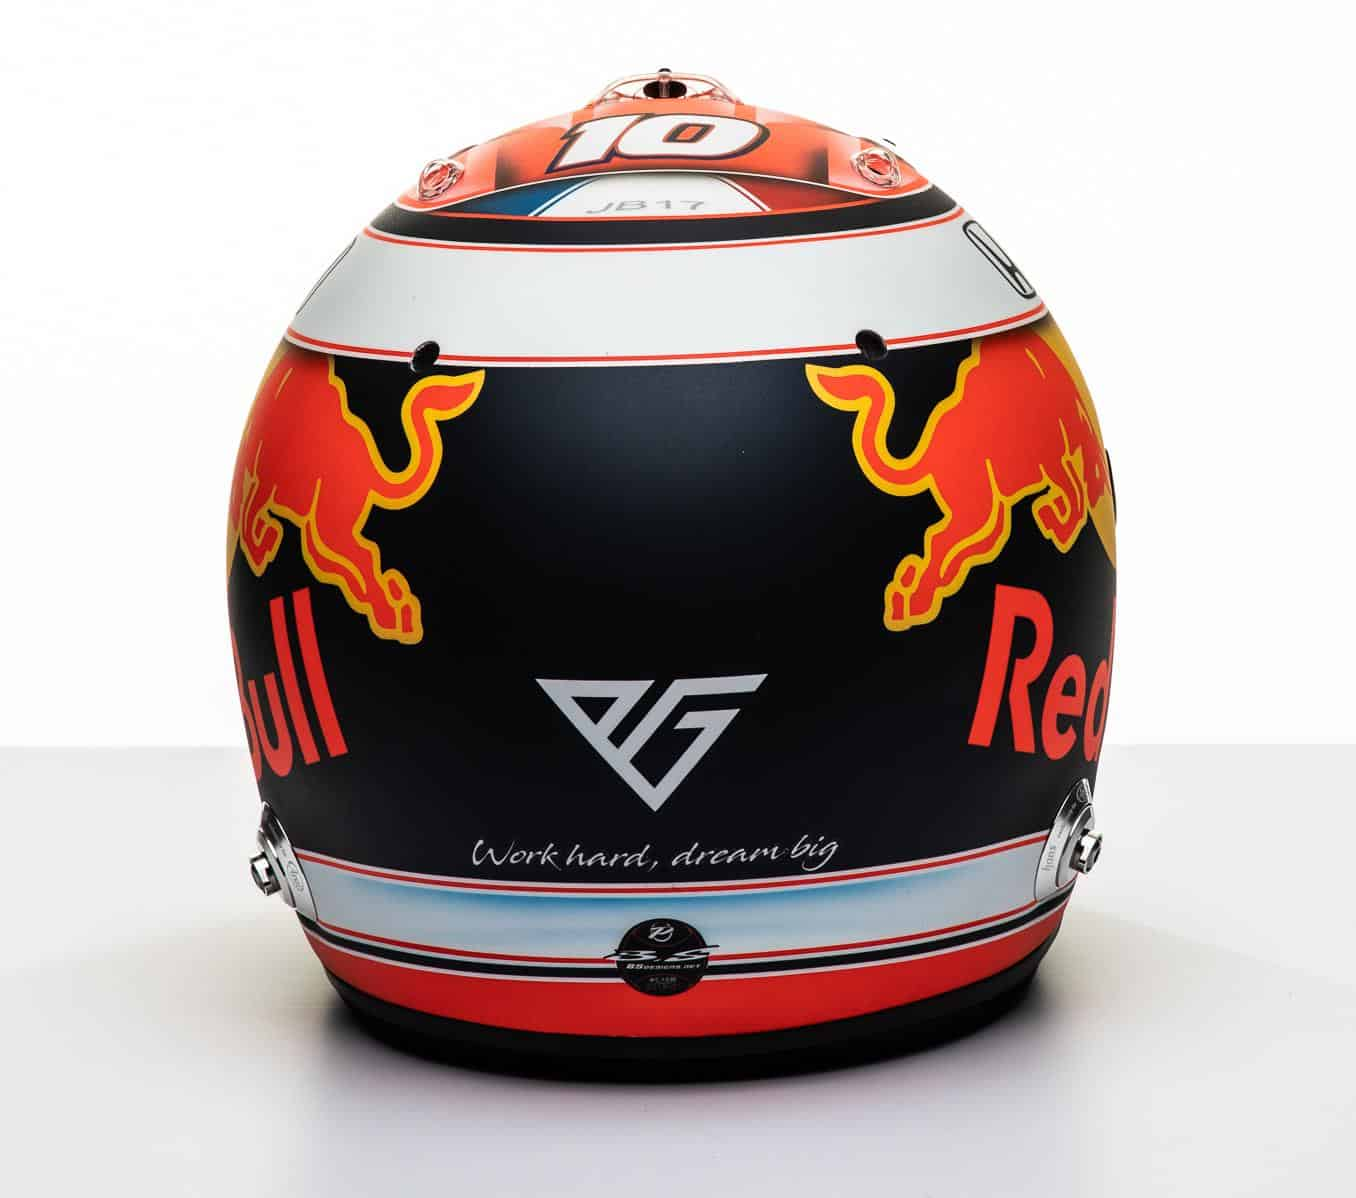 2019 F1 Pierre Gasly Red Bull Honda helmet rear Photo Red Bull Edited by MAXF1net